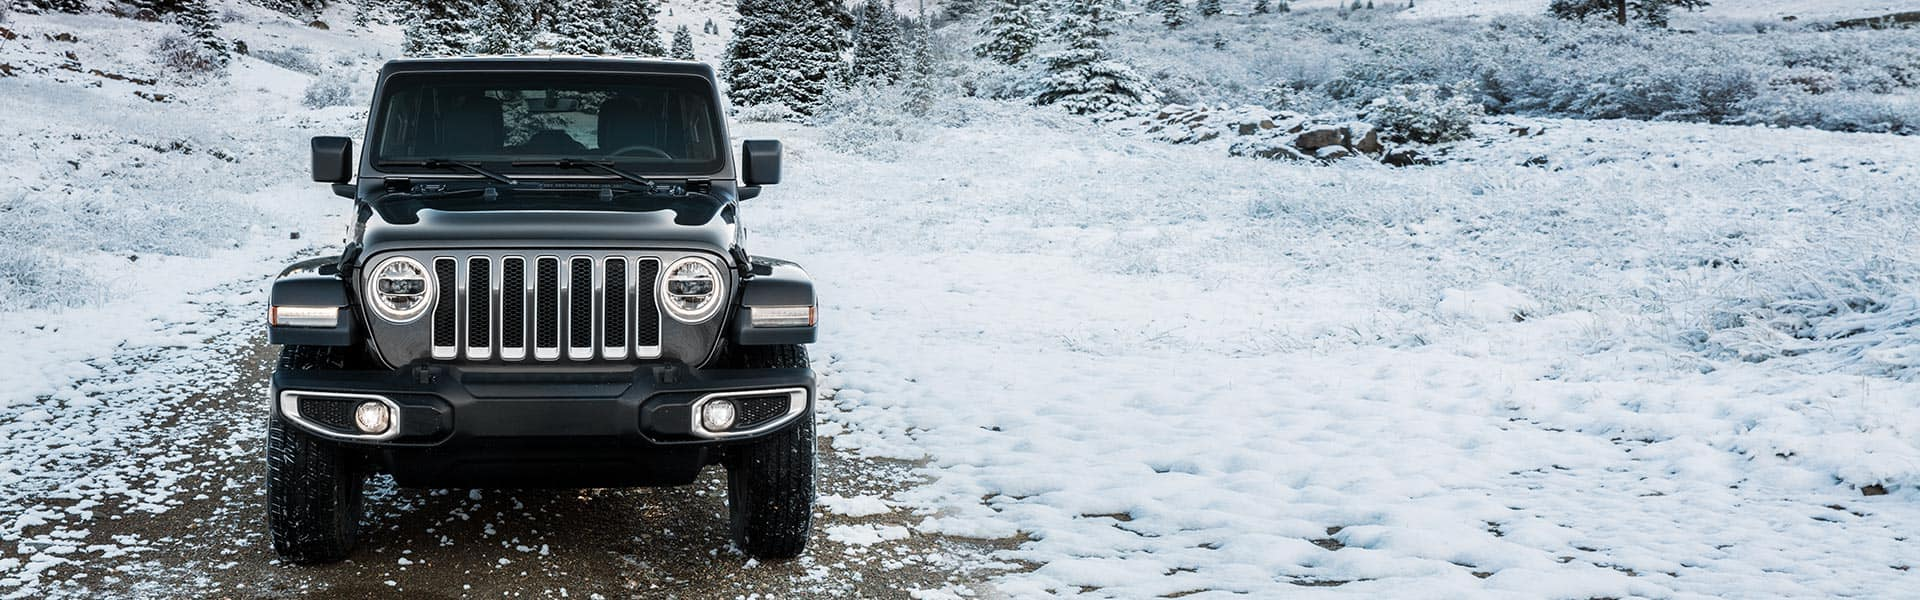 A head-on front view of a 2021 Jeep Wrangler Sahara Unlimited on a snow-covered trail in a wooded area of hills.